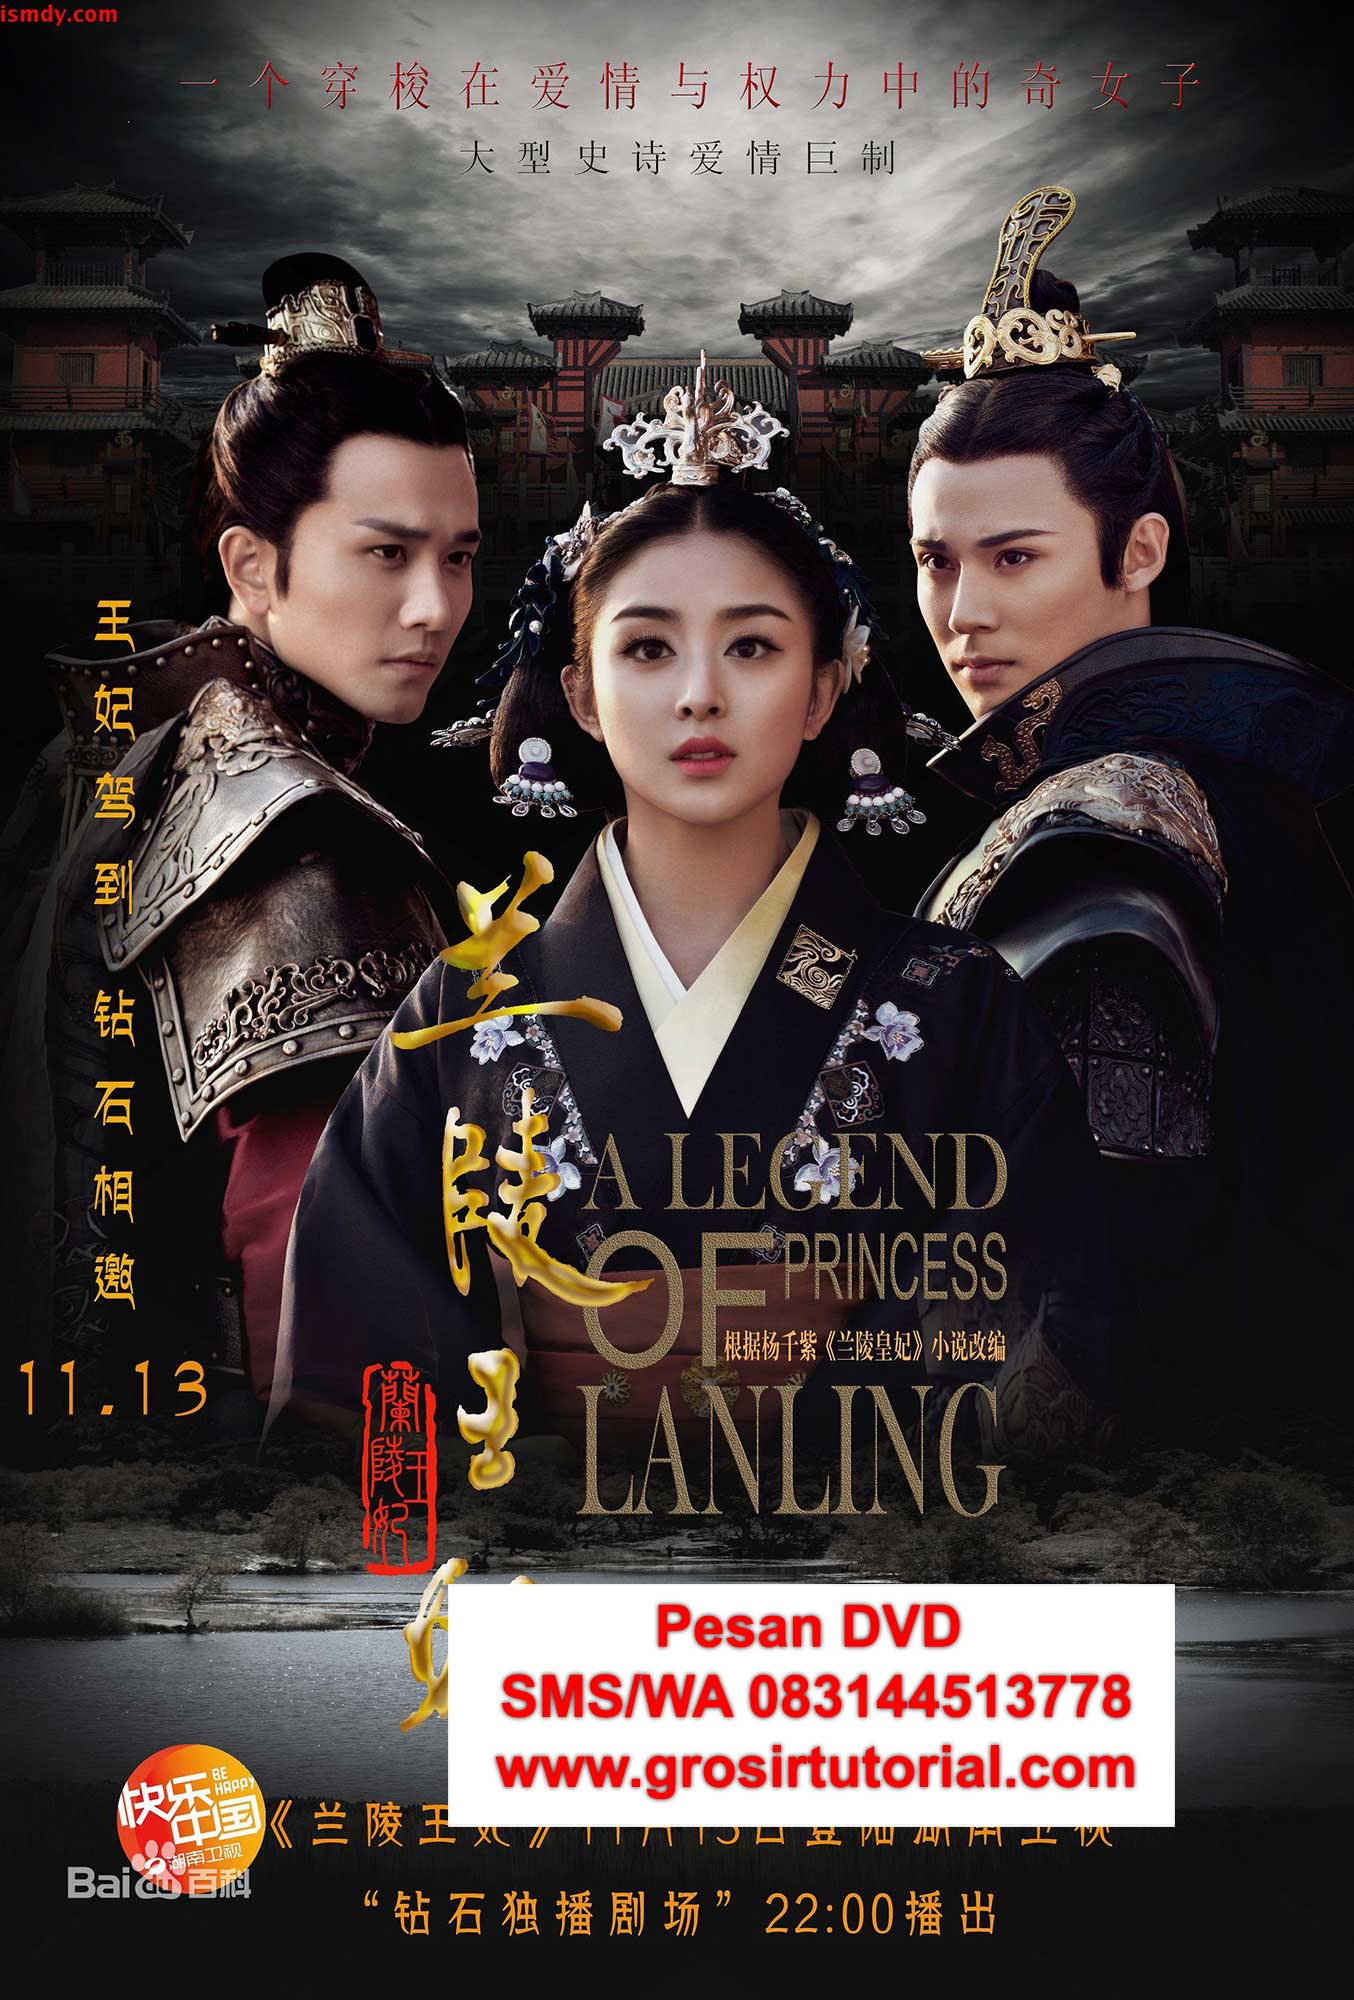 jual-DVD-mandarin-Princes-of-Lanking